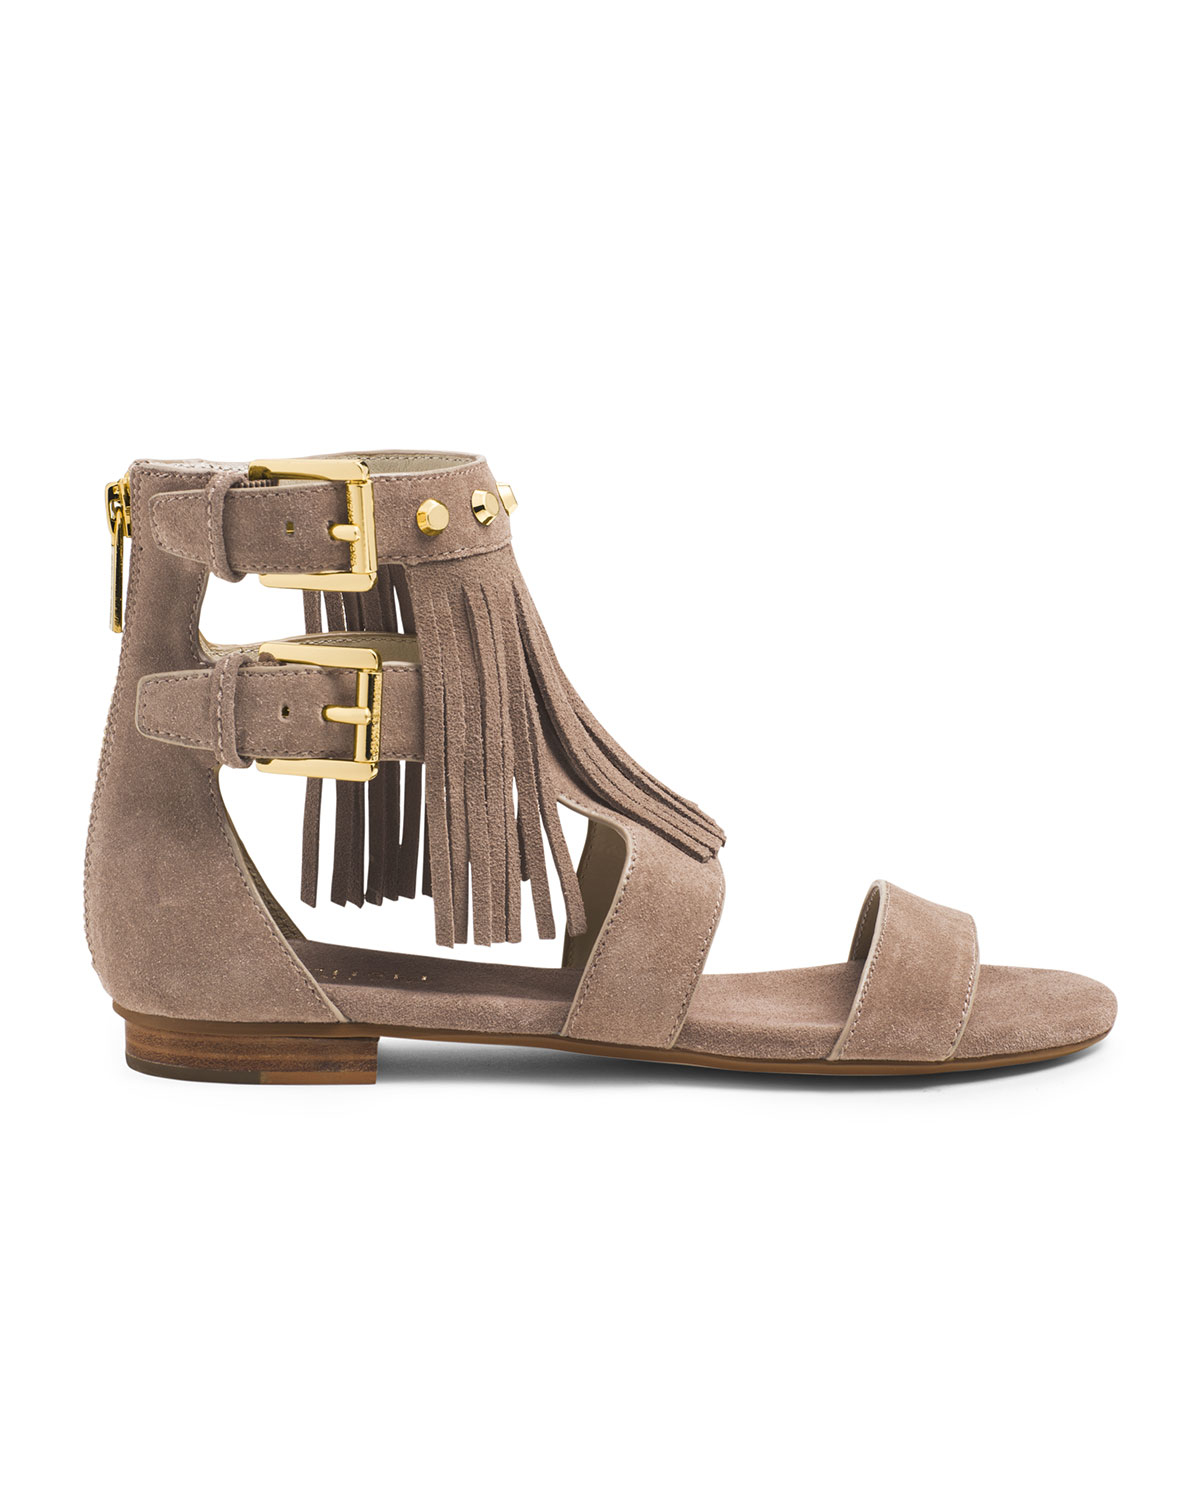 fringed sandals - Brown Michael Kors